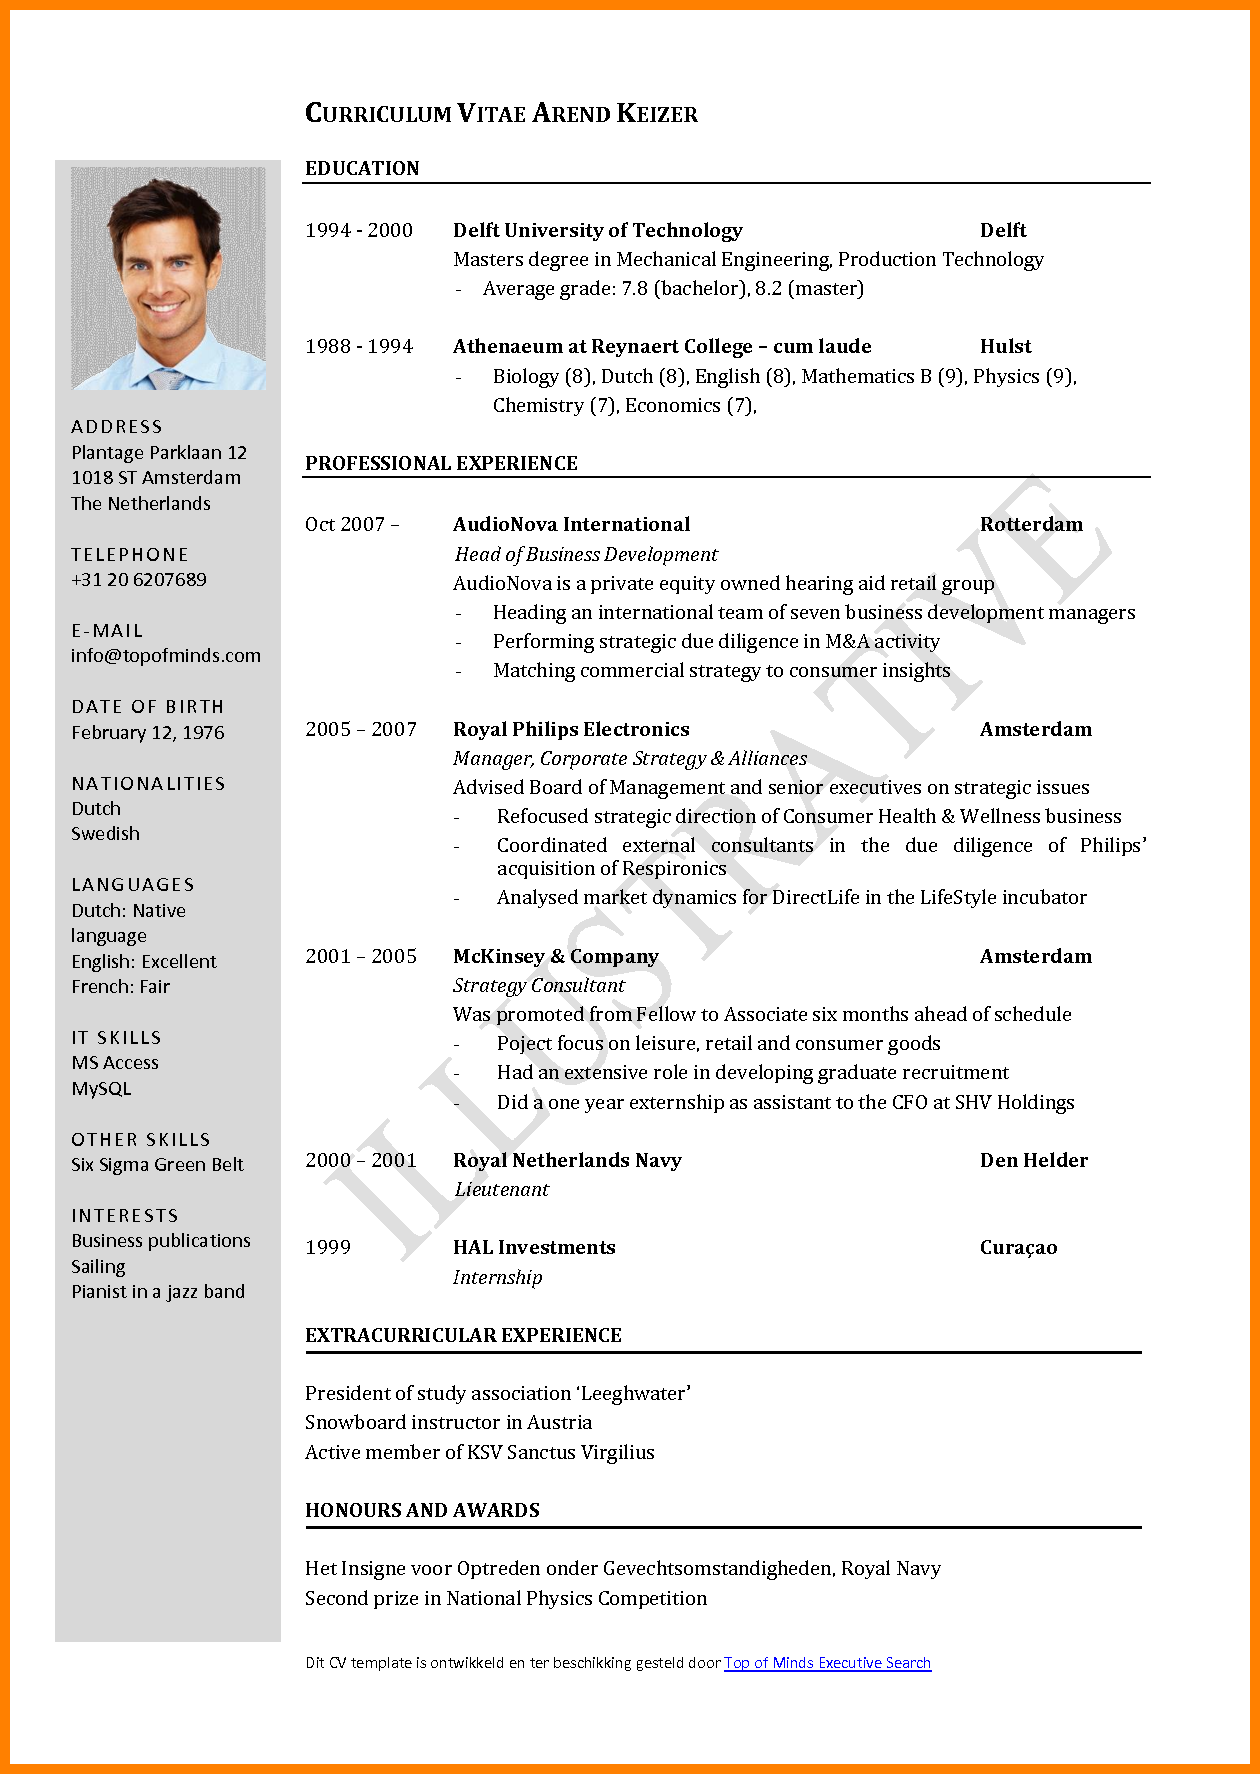 11 Cv Sample Resume Theorynpractice Job Resume Format Curriculum Vitae Template Free Resume Template Download